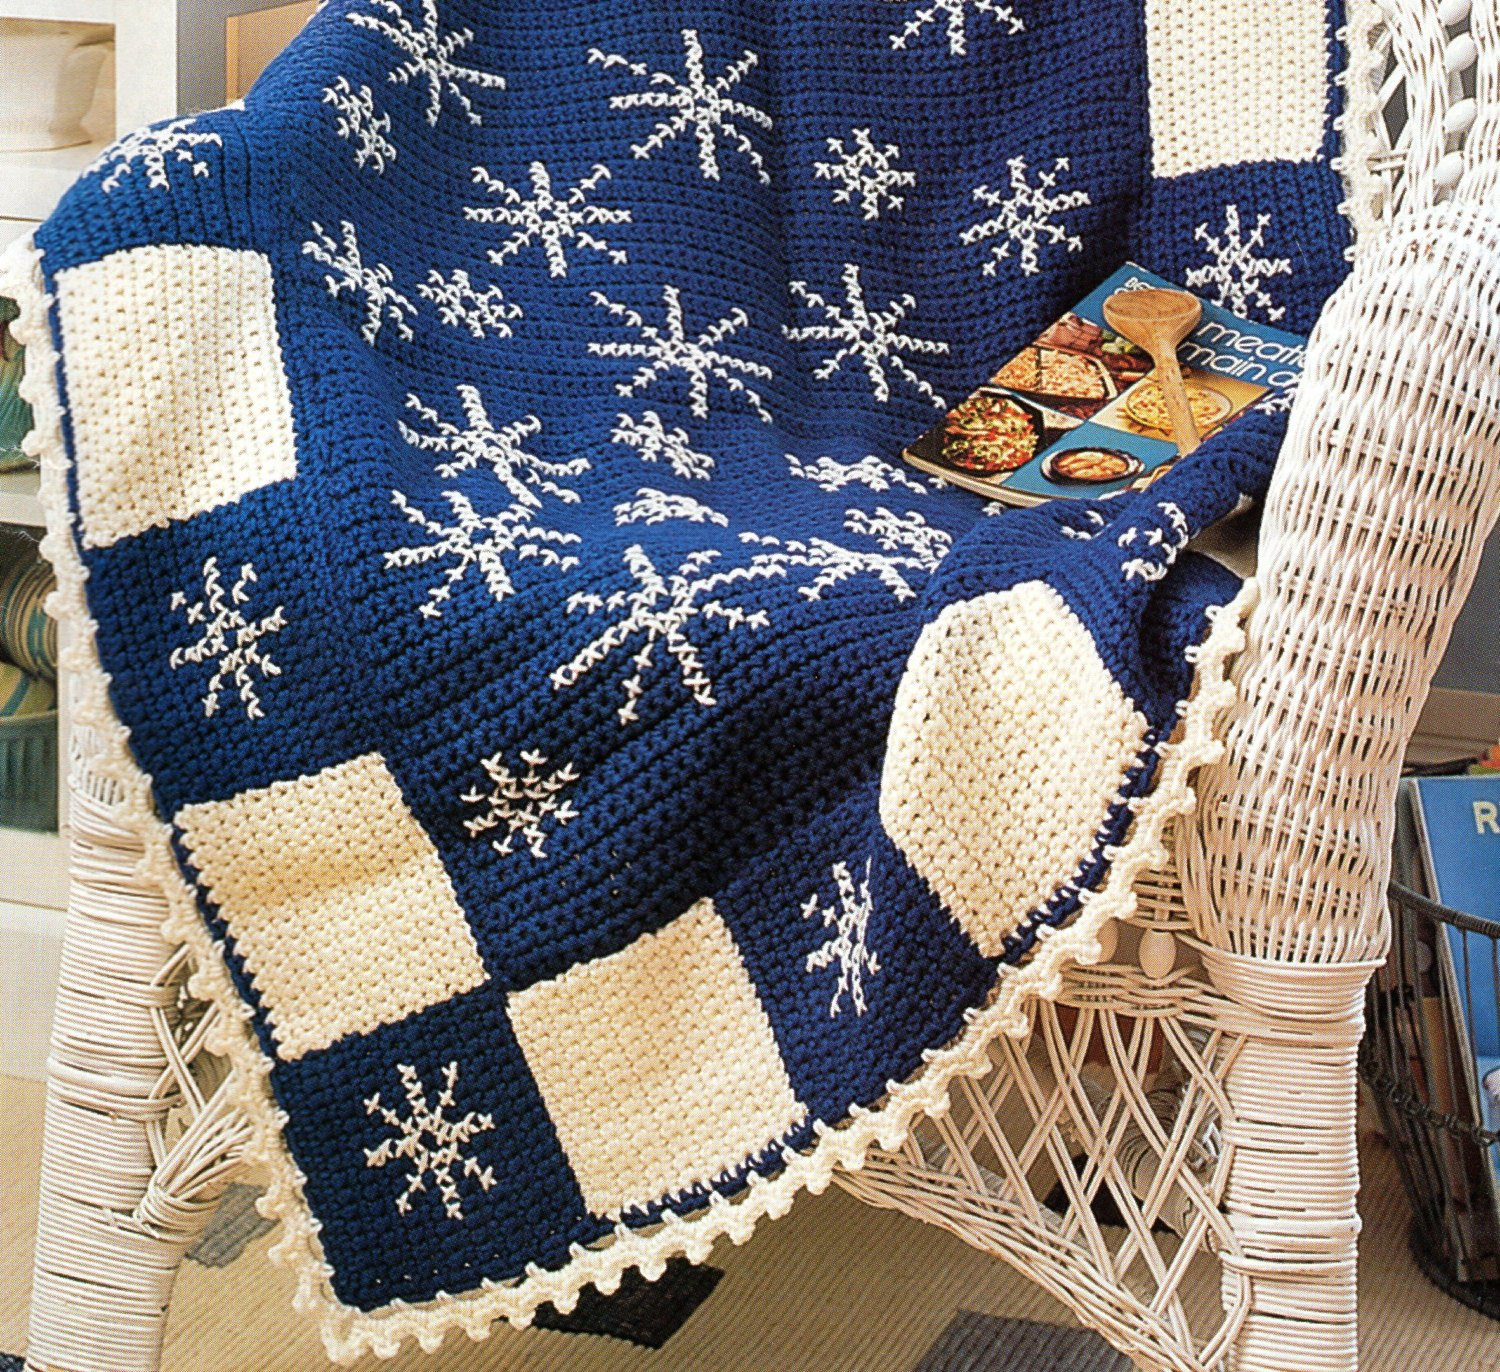 Lovely Snowflakes Afghan Lapghan Crochet Pattern Christmas Holiday Lapghan Patterns Of Brilliant 39 Images Lapghan Patterns